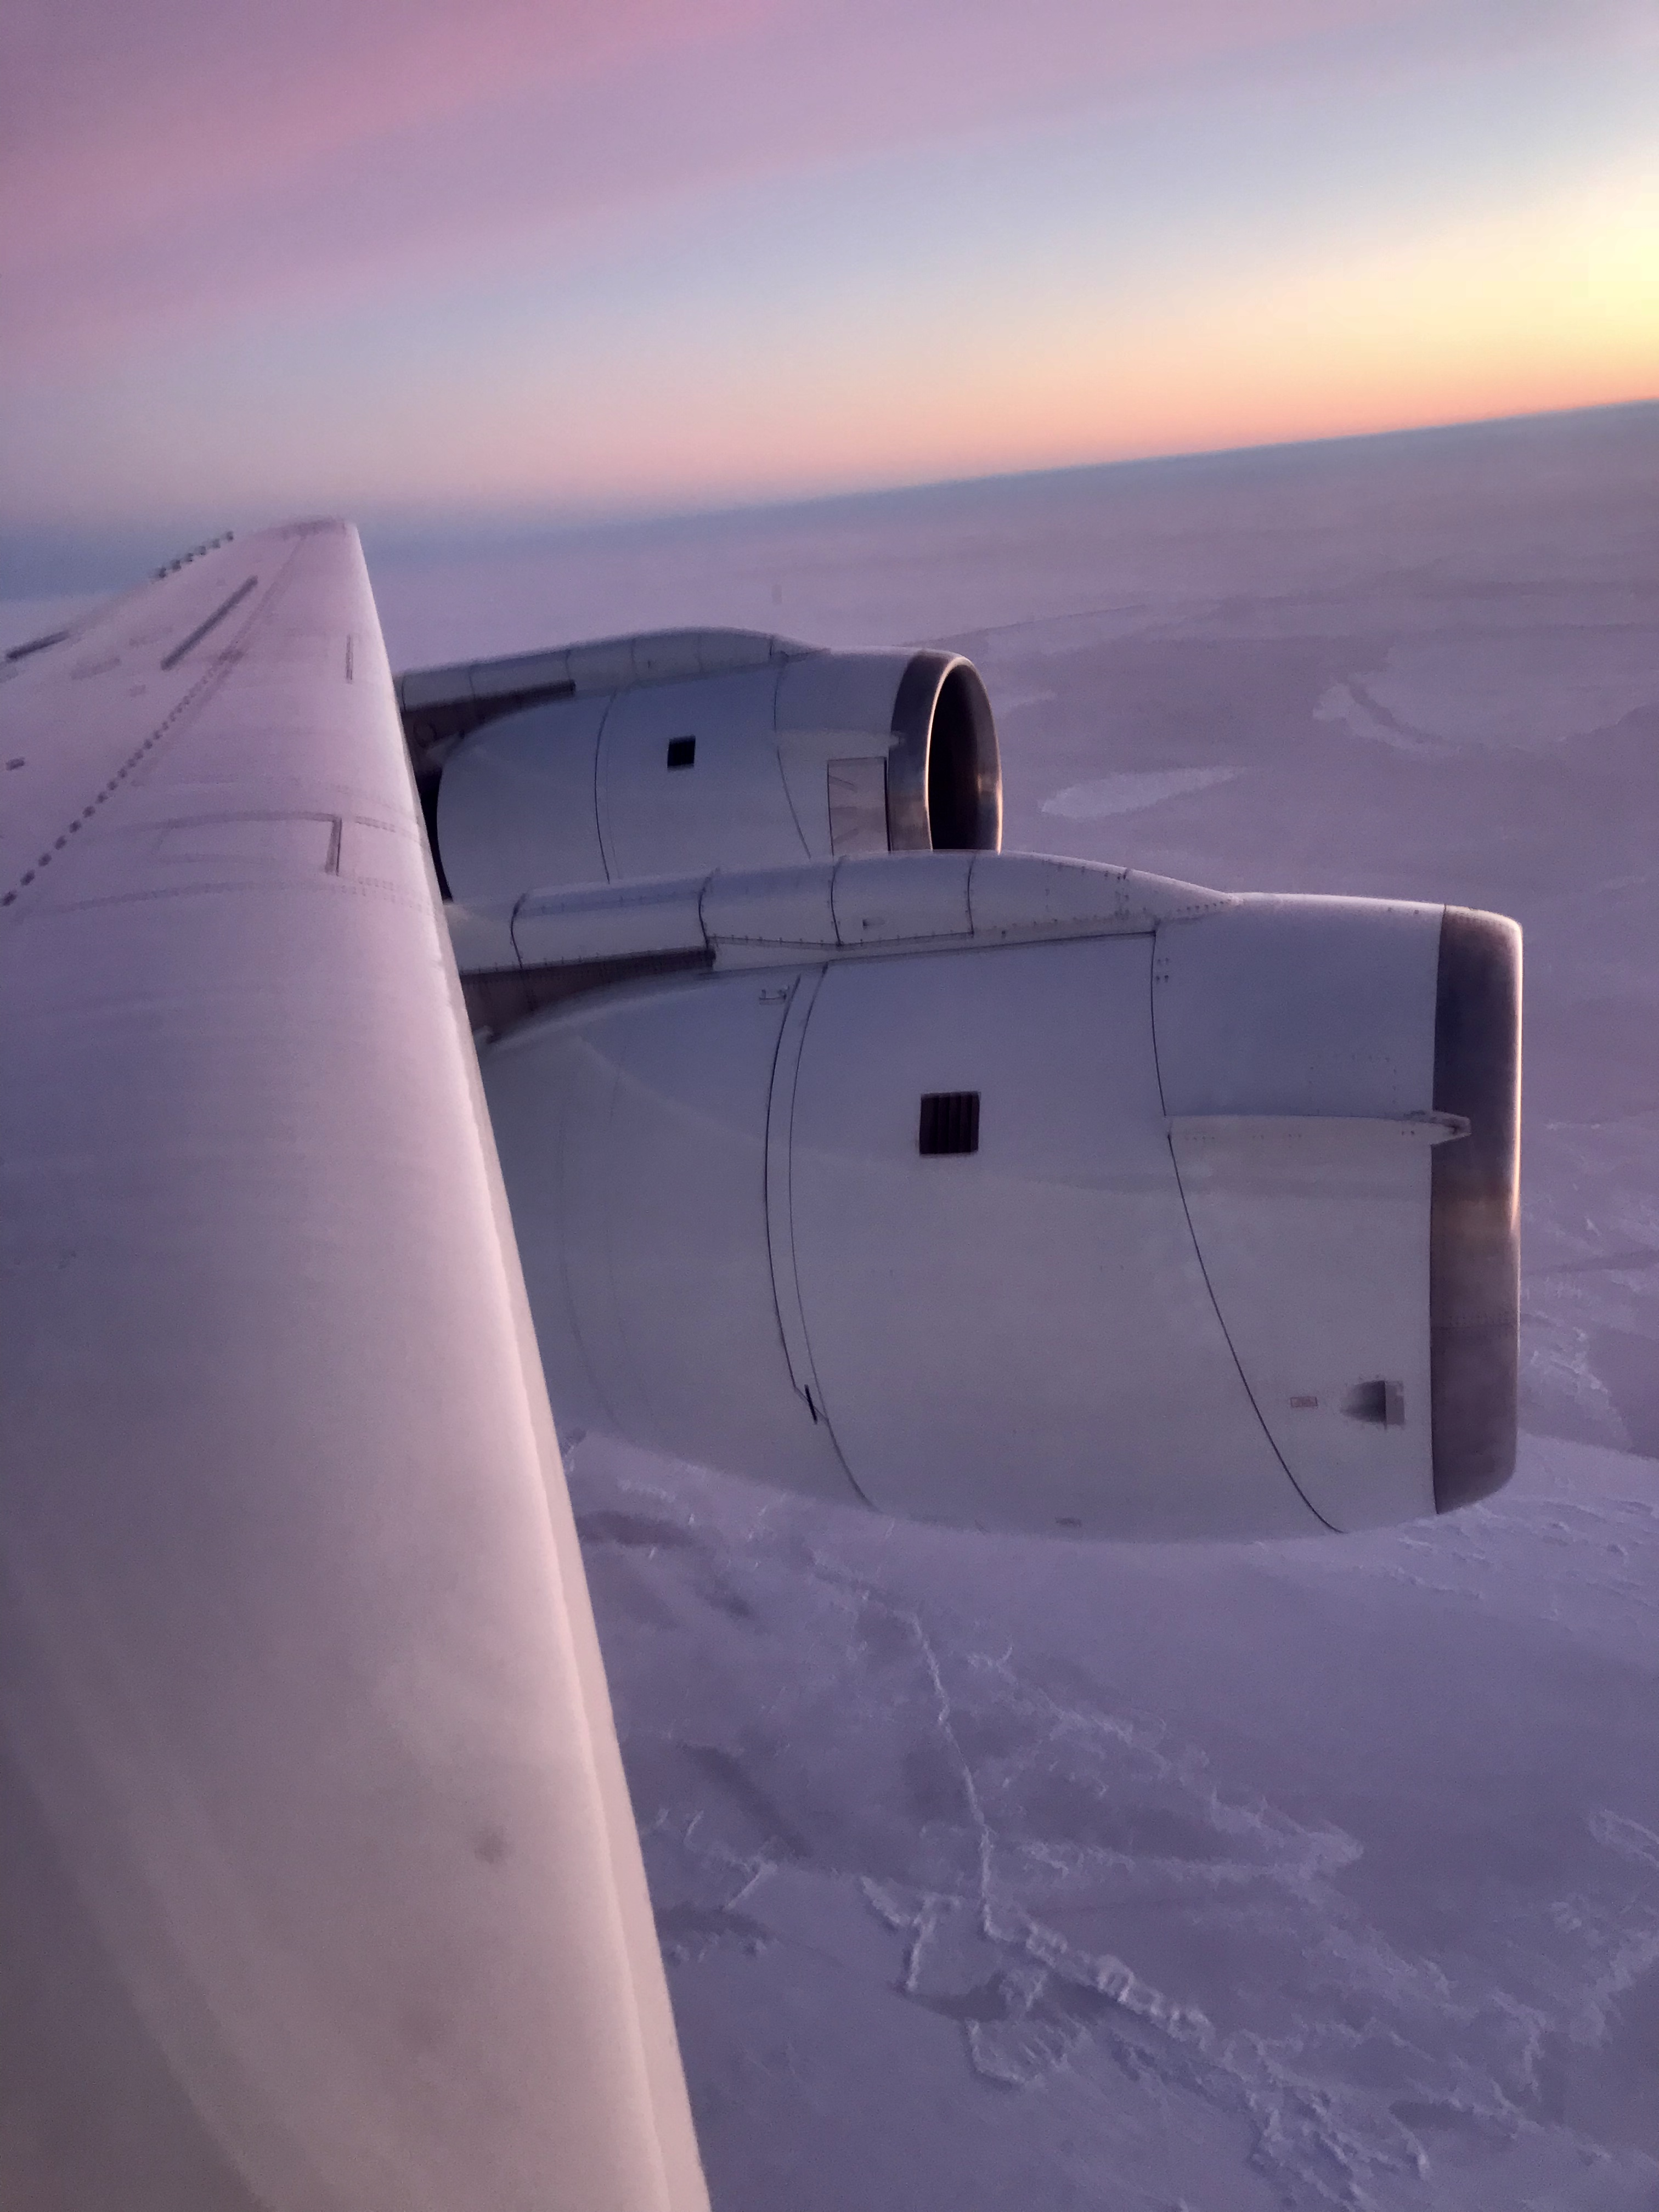 A view of NASA's DC-8 engines and wing as we were chasing the sea ice below.